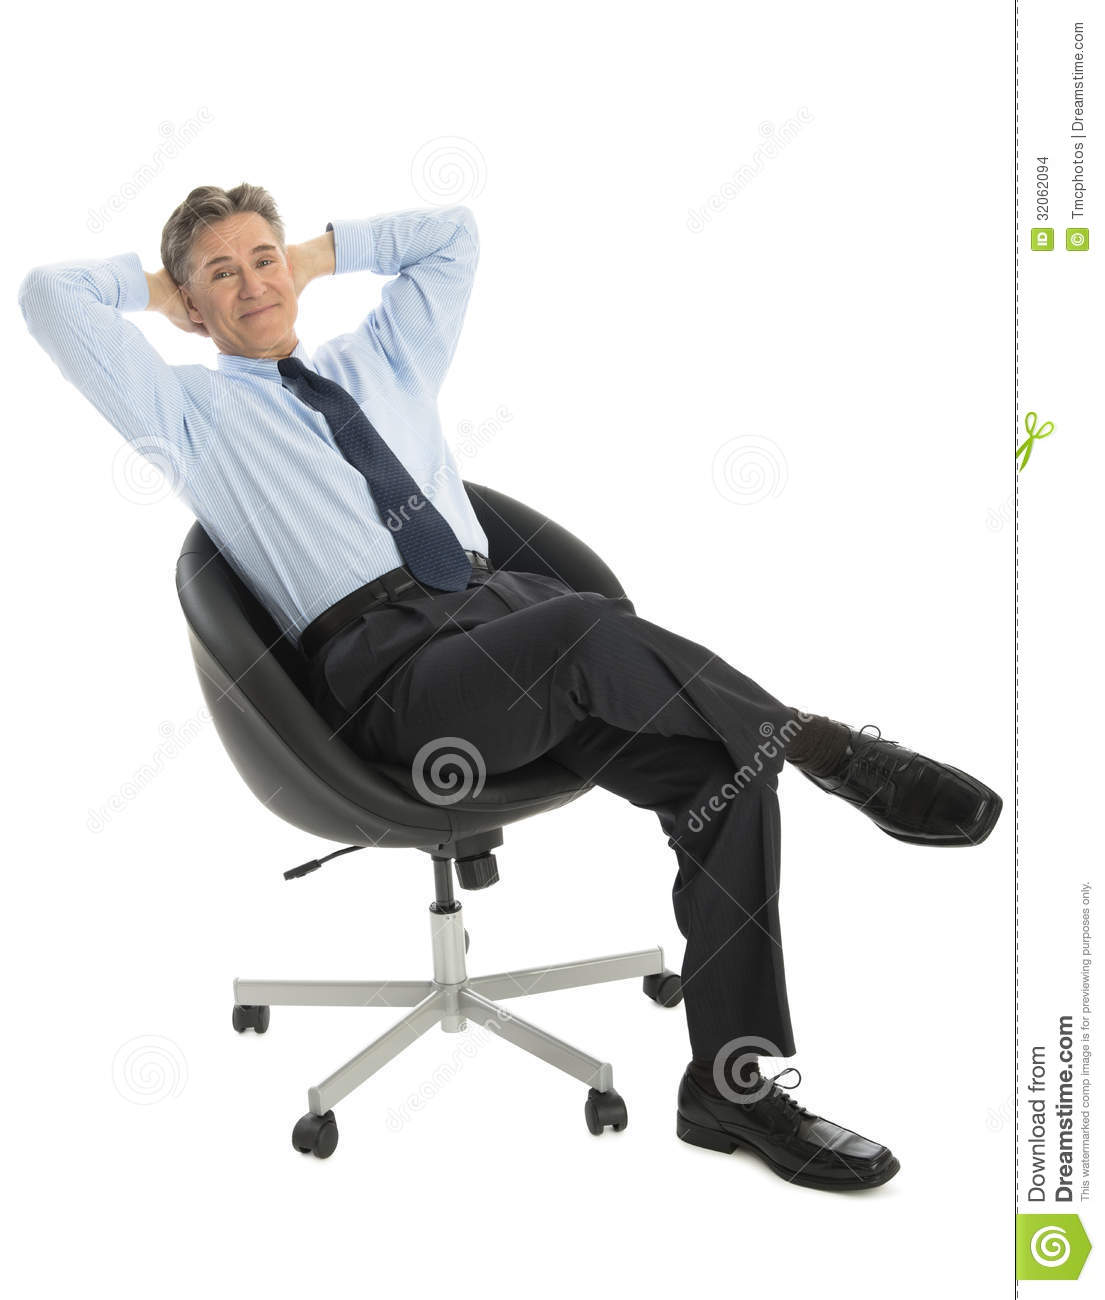 Sitting Chair: Portrait Of Relaxed Businessman Sitting On Office Chair